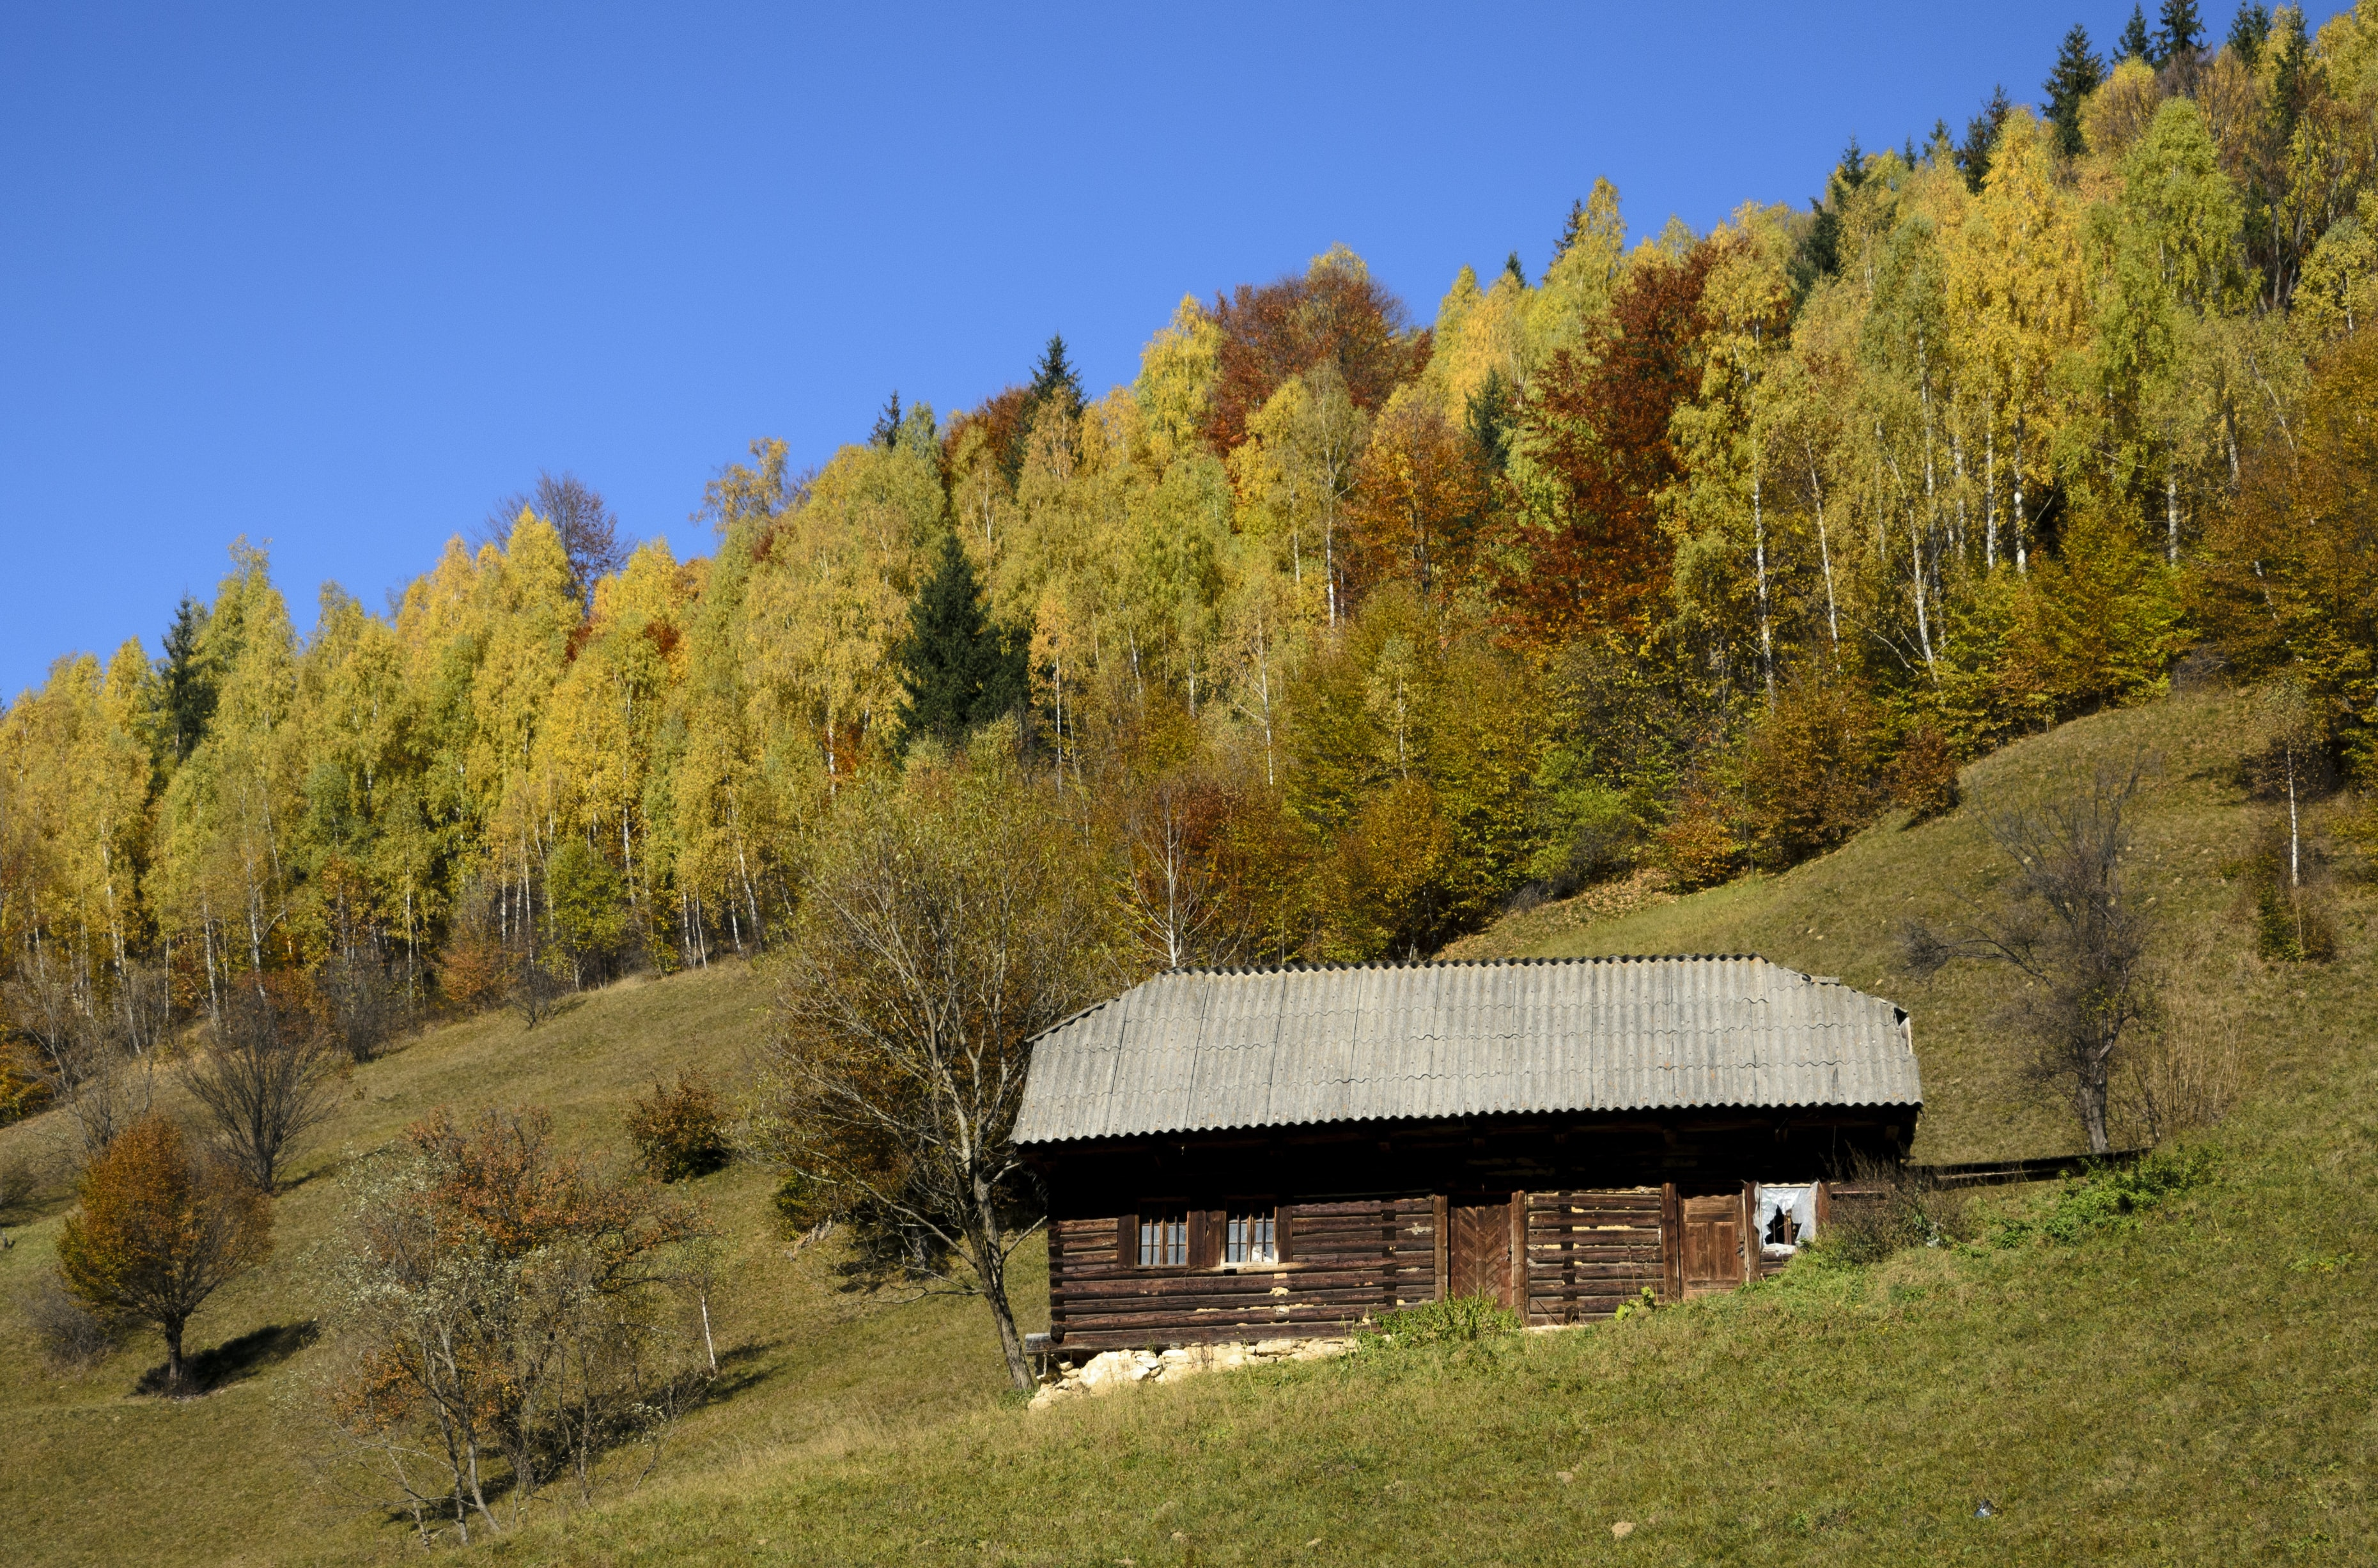 brown wooden cabin near forest